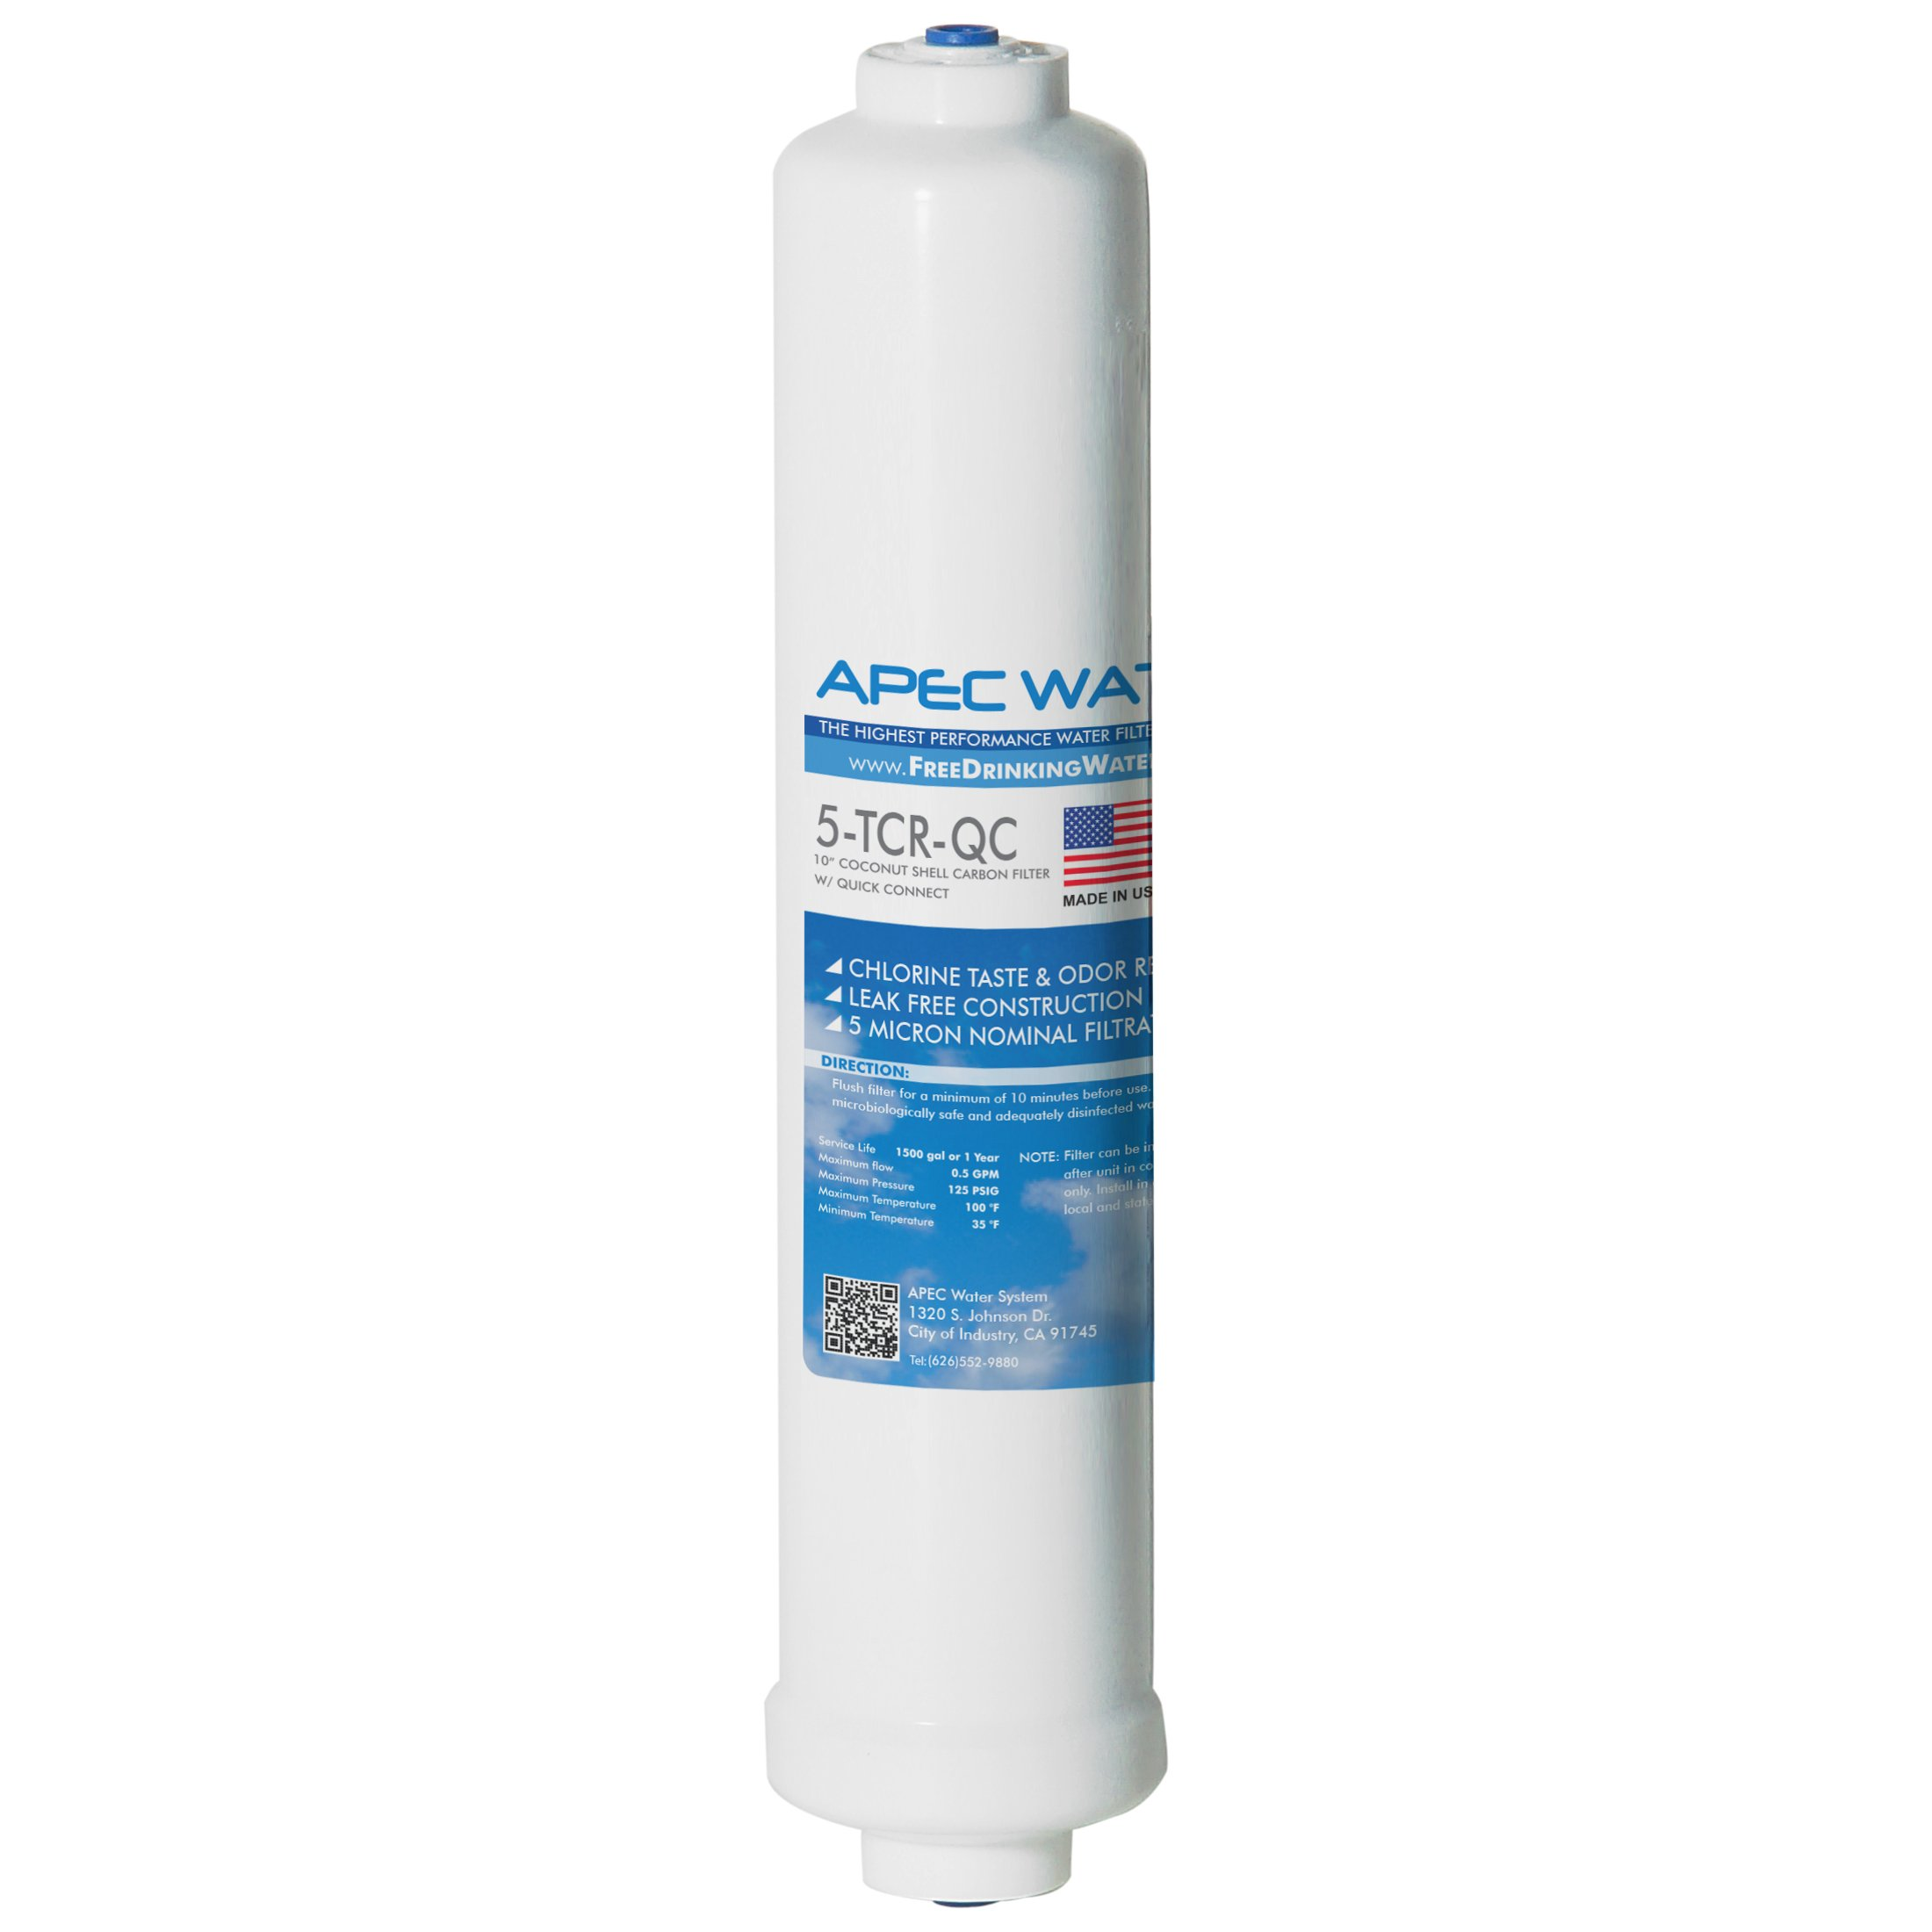 APEC 5-TCR-QC US MADE 10'' Inline Carbon Filter with ¼'' Quick Connect For Reverse Osmosis Water Filter System (For Standard System) by APEC Water Systems